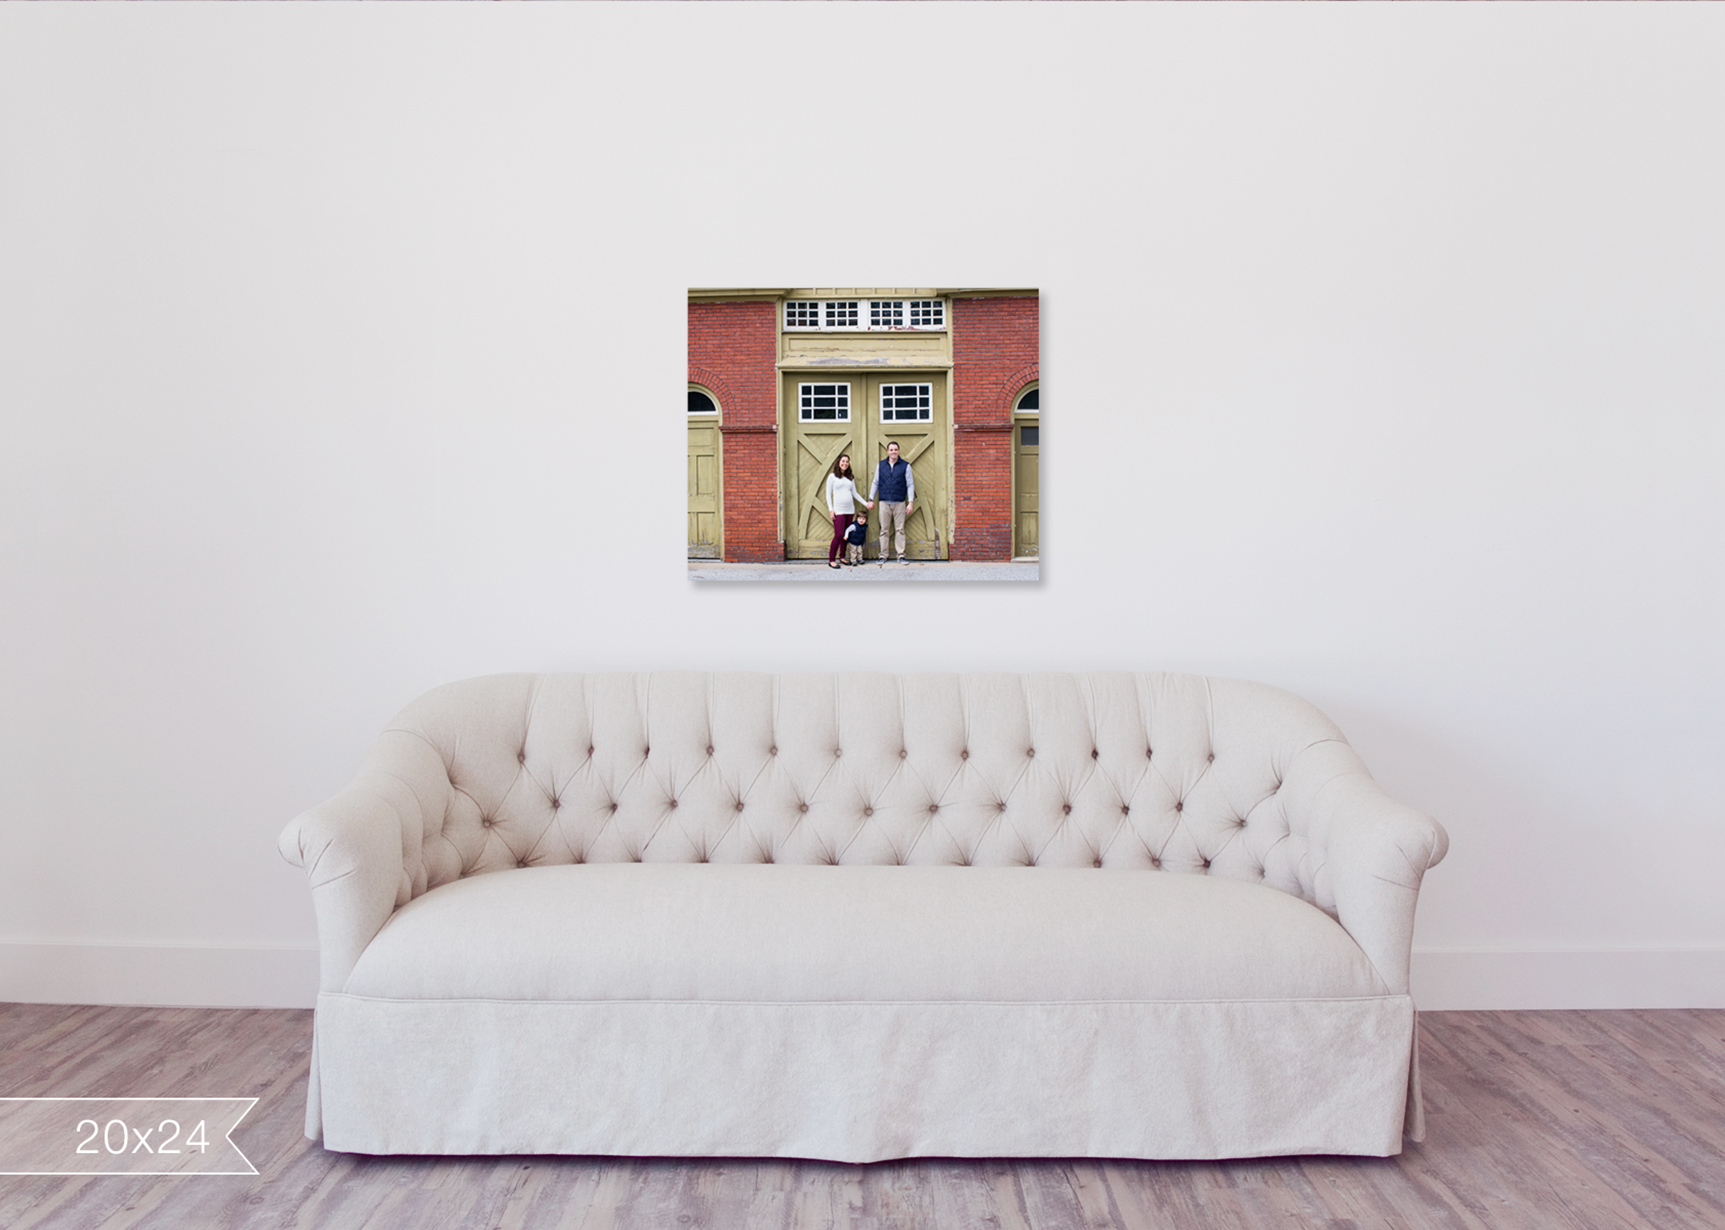 20x24 above couch.jpg